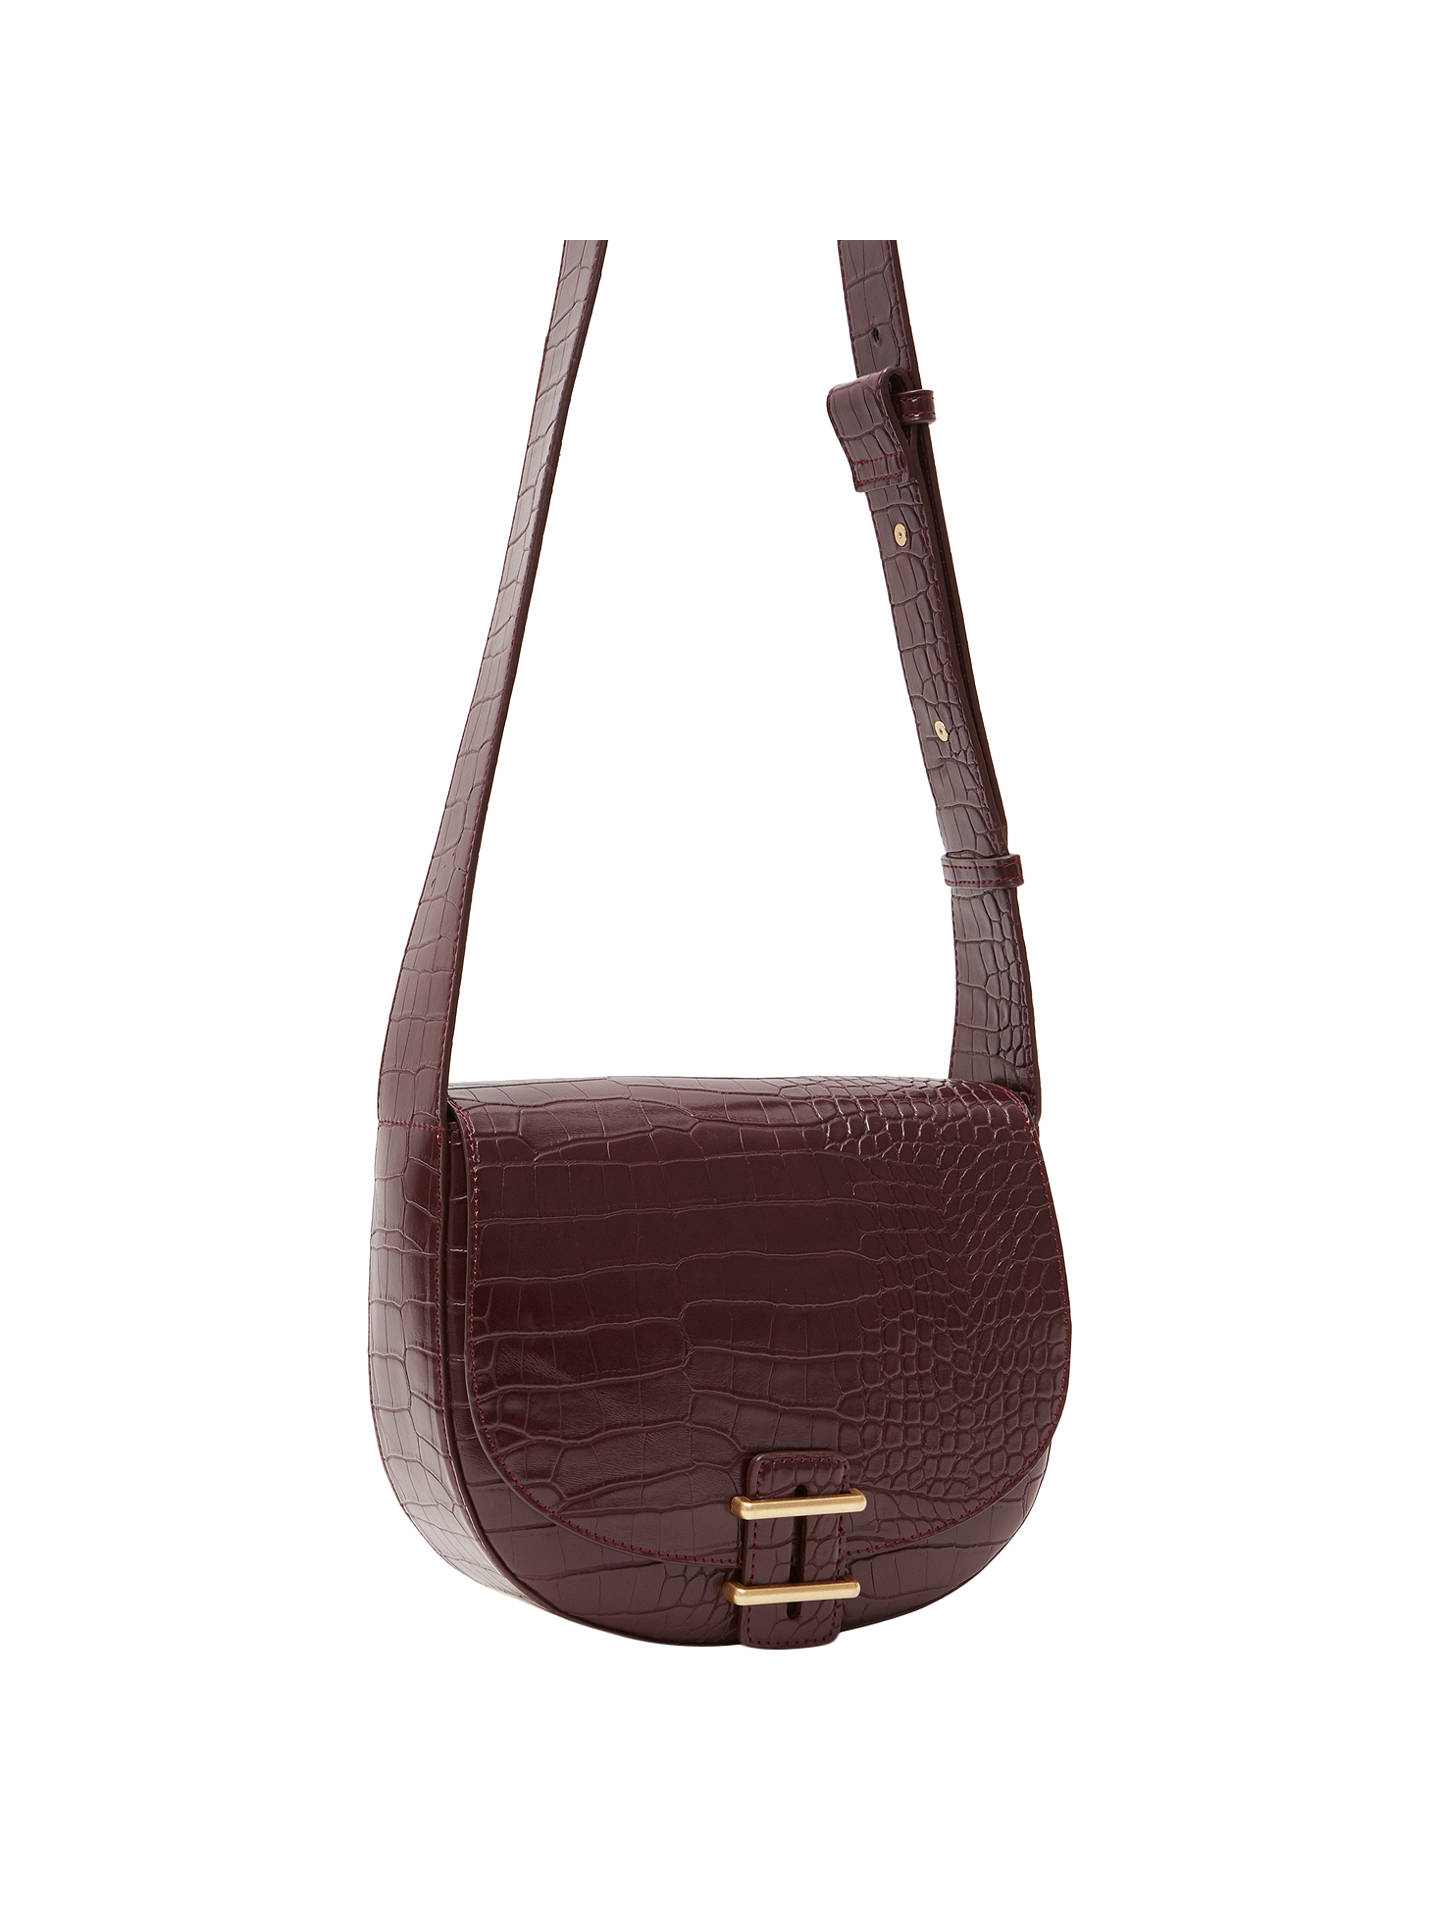 French Connection Contemporary Slide Lock Magda Cross Body Bag Chocolate Chili Croc Online At Johnlewis